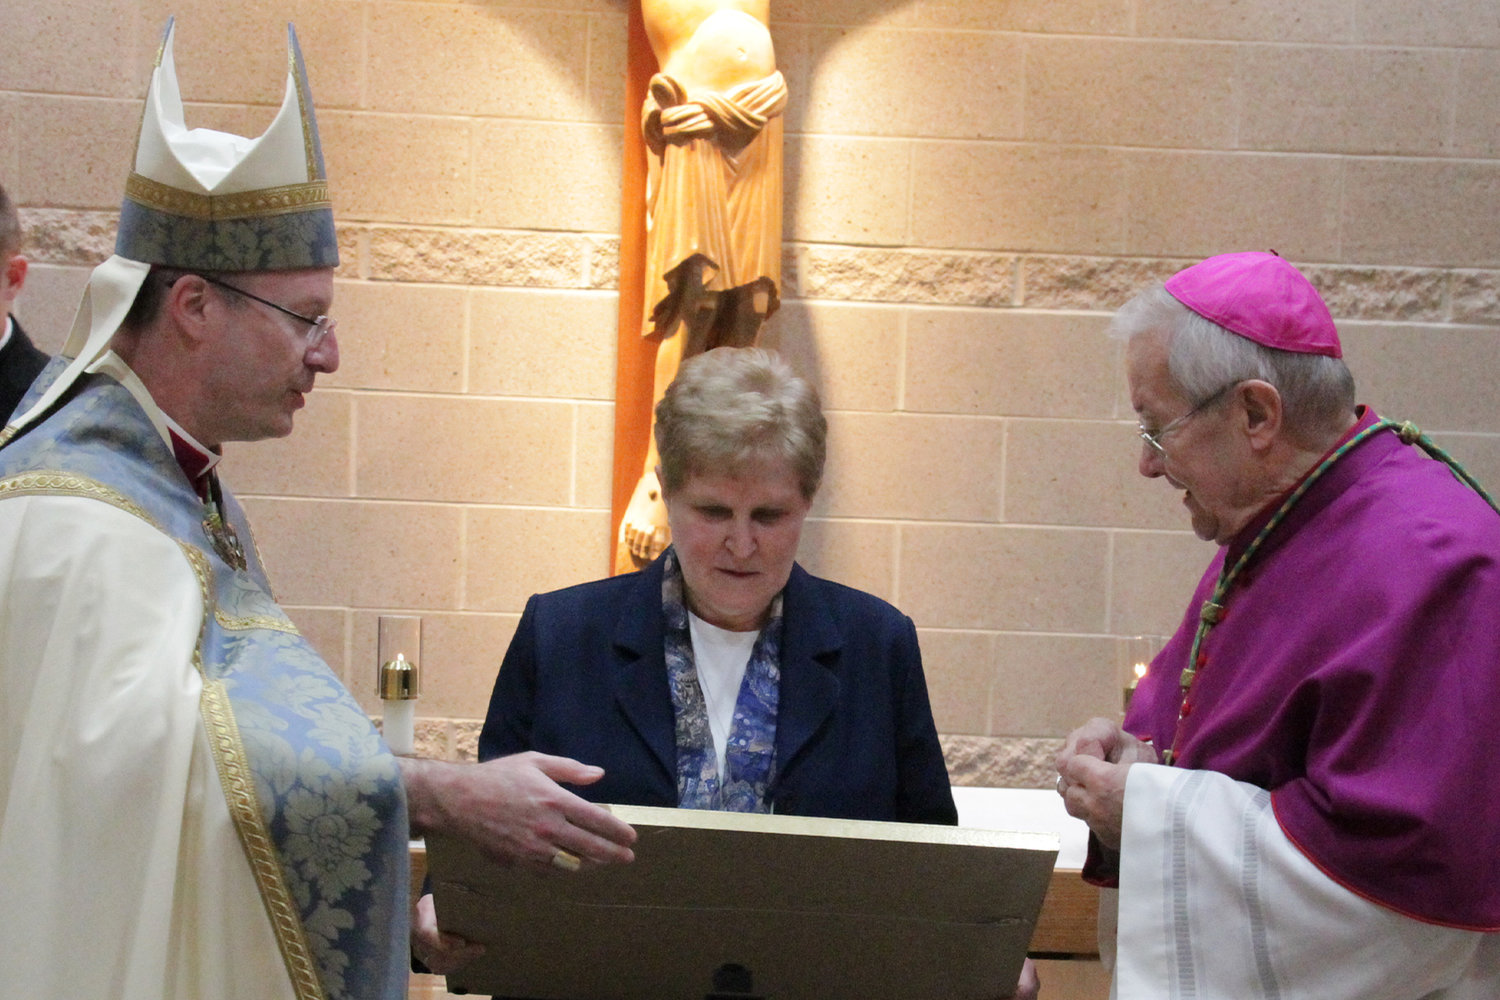 Bishop W. Shawn McKnight (left) and Bishop Emeritus John R. Gaydos present Sister Kathleen Wegman SSND the proclamation that came with an award she received from Pope Francis on the occasion of her retirement from full-time ministry.